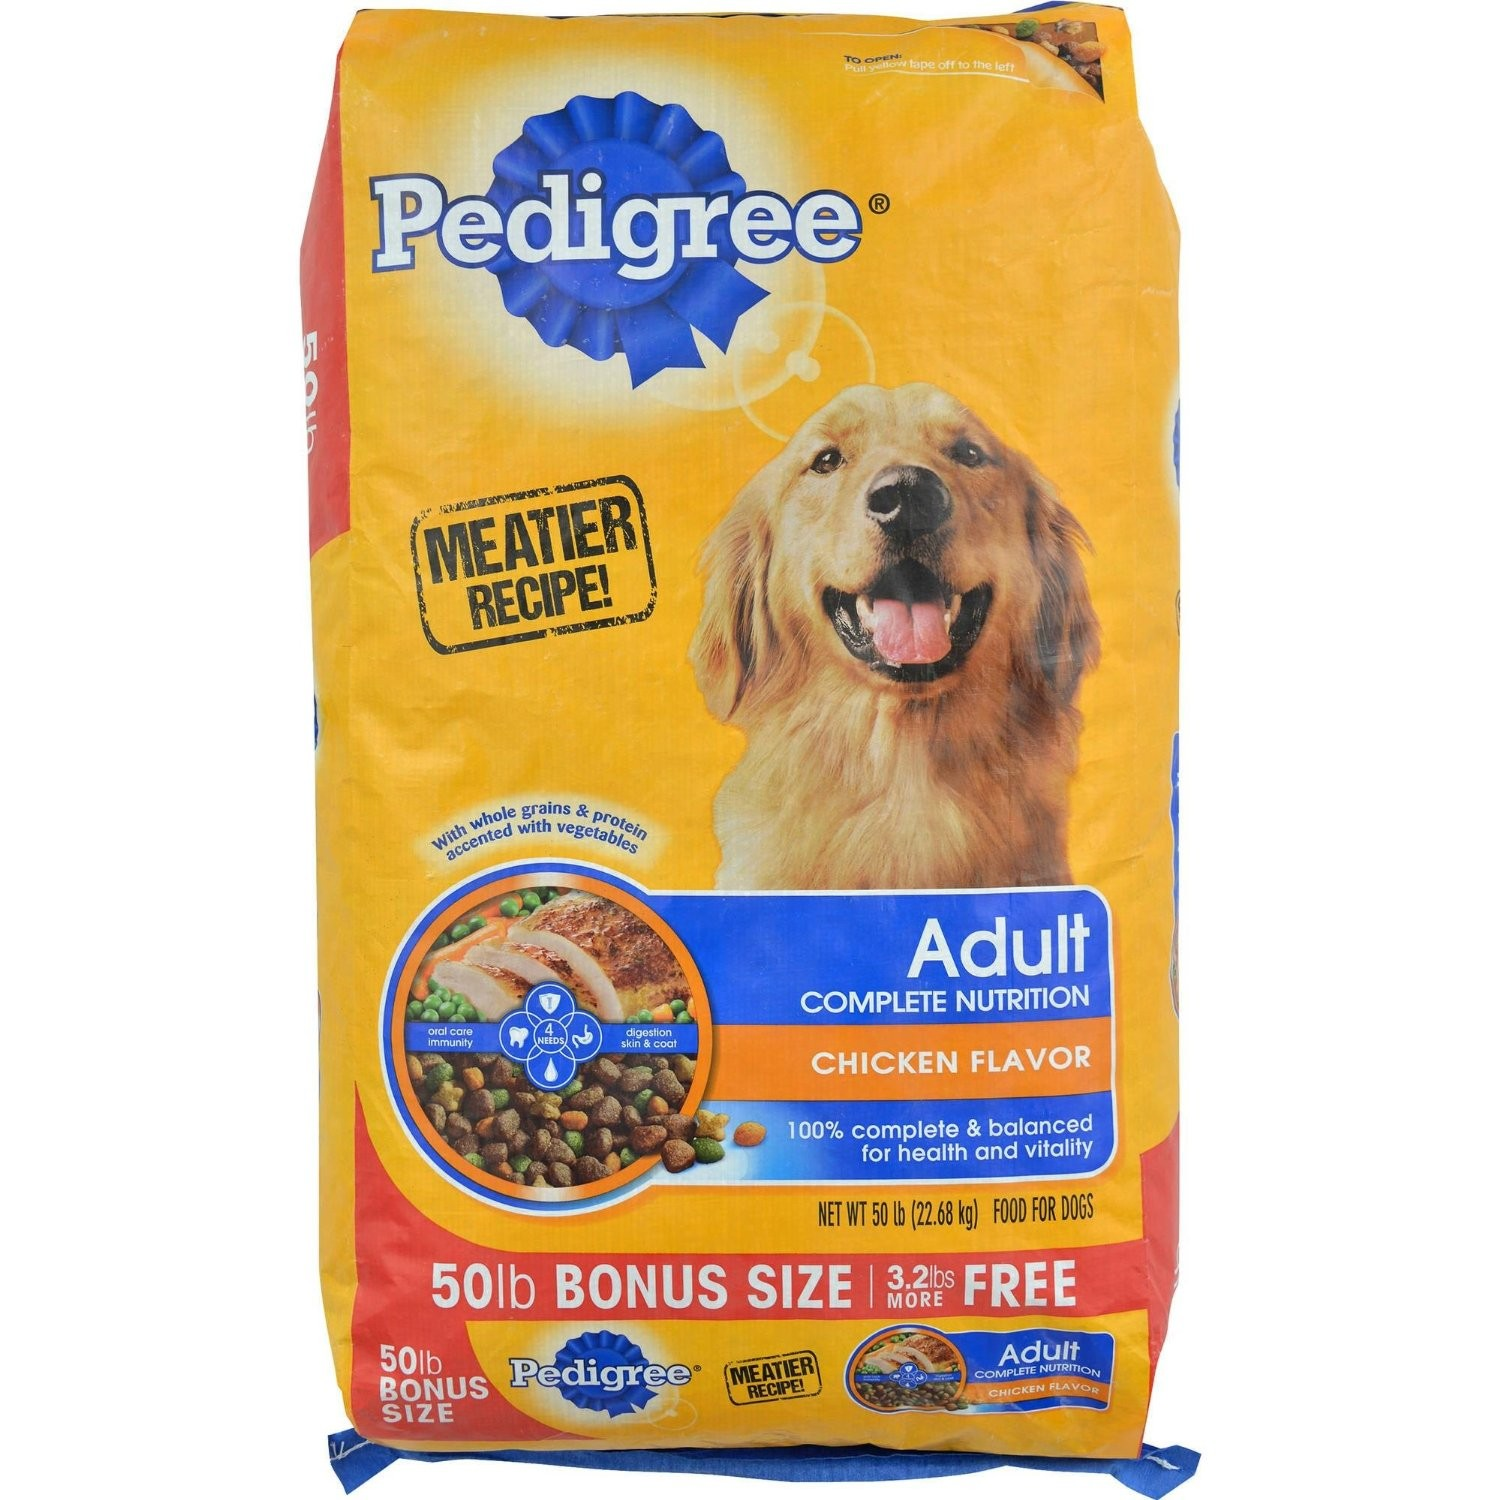 Pedigree Puppy Targeted Nutrition Chicken Flavor